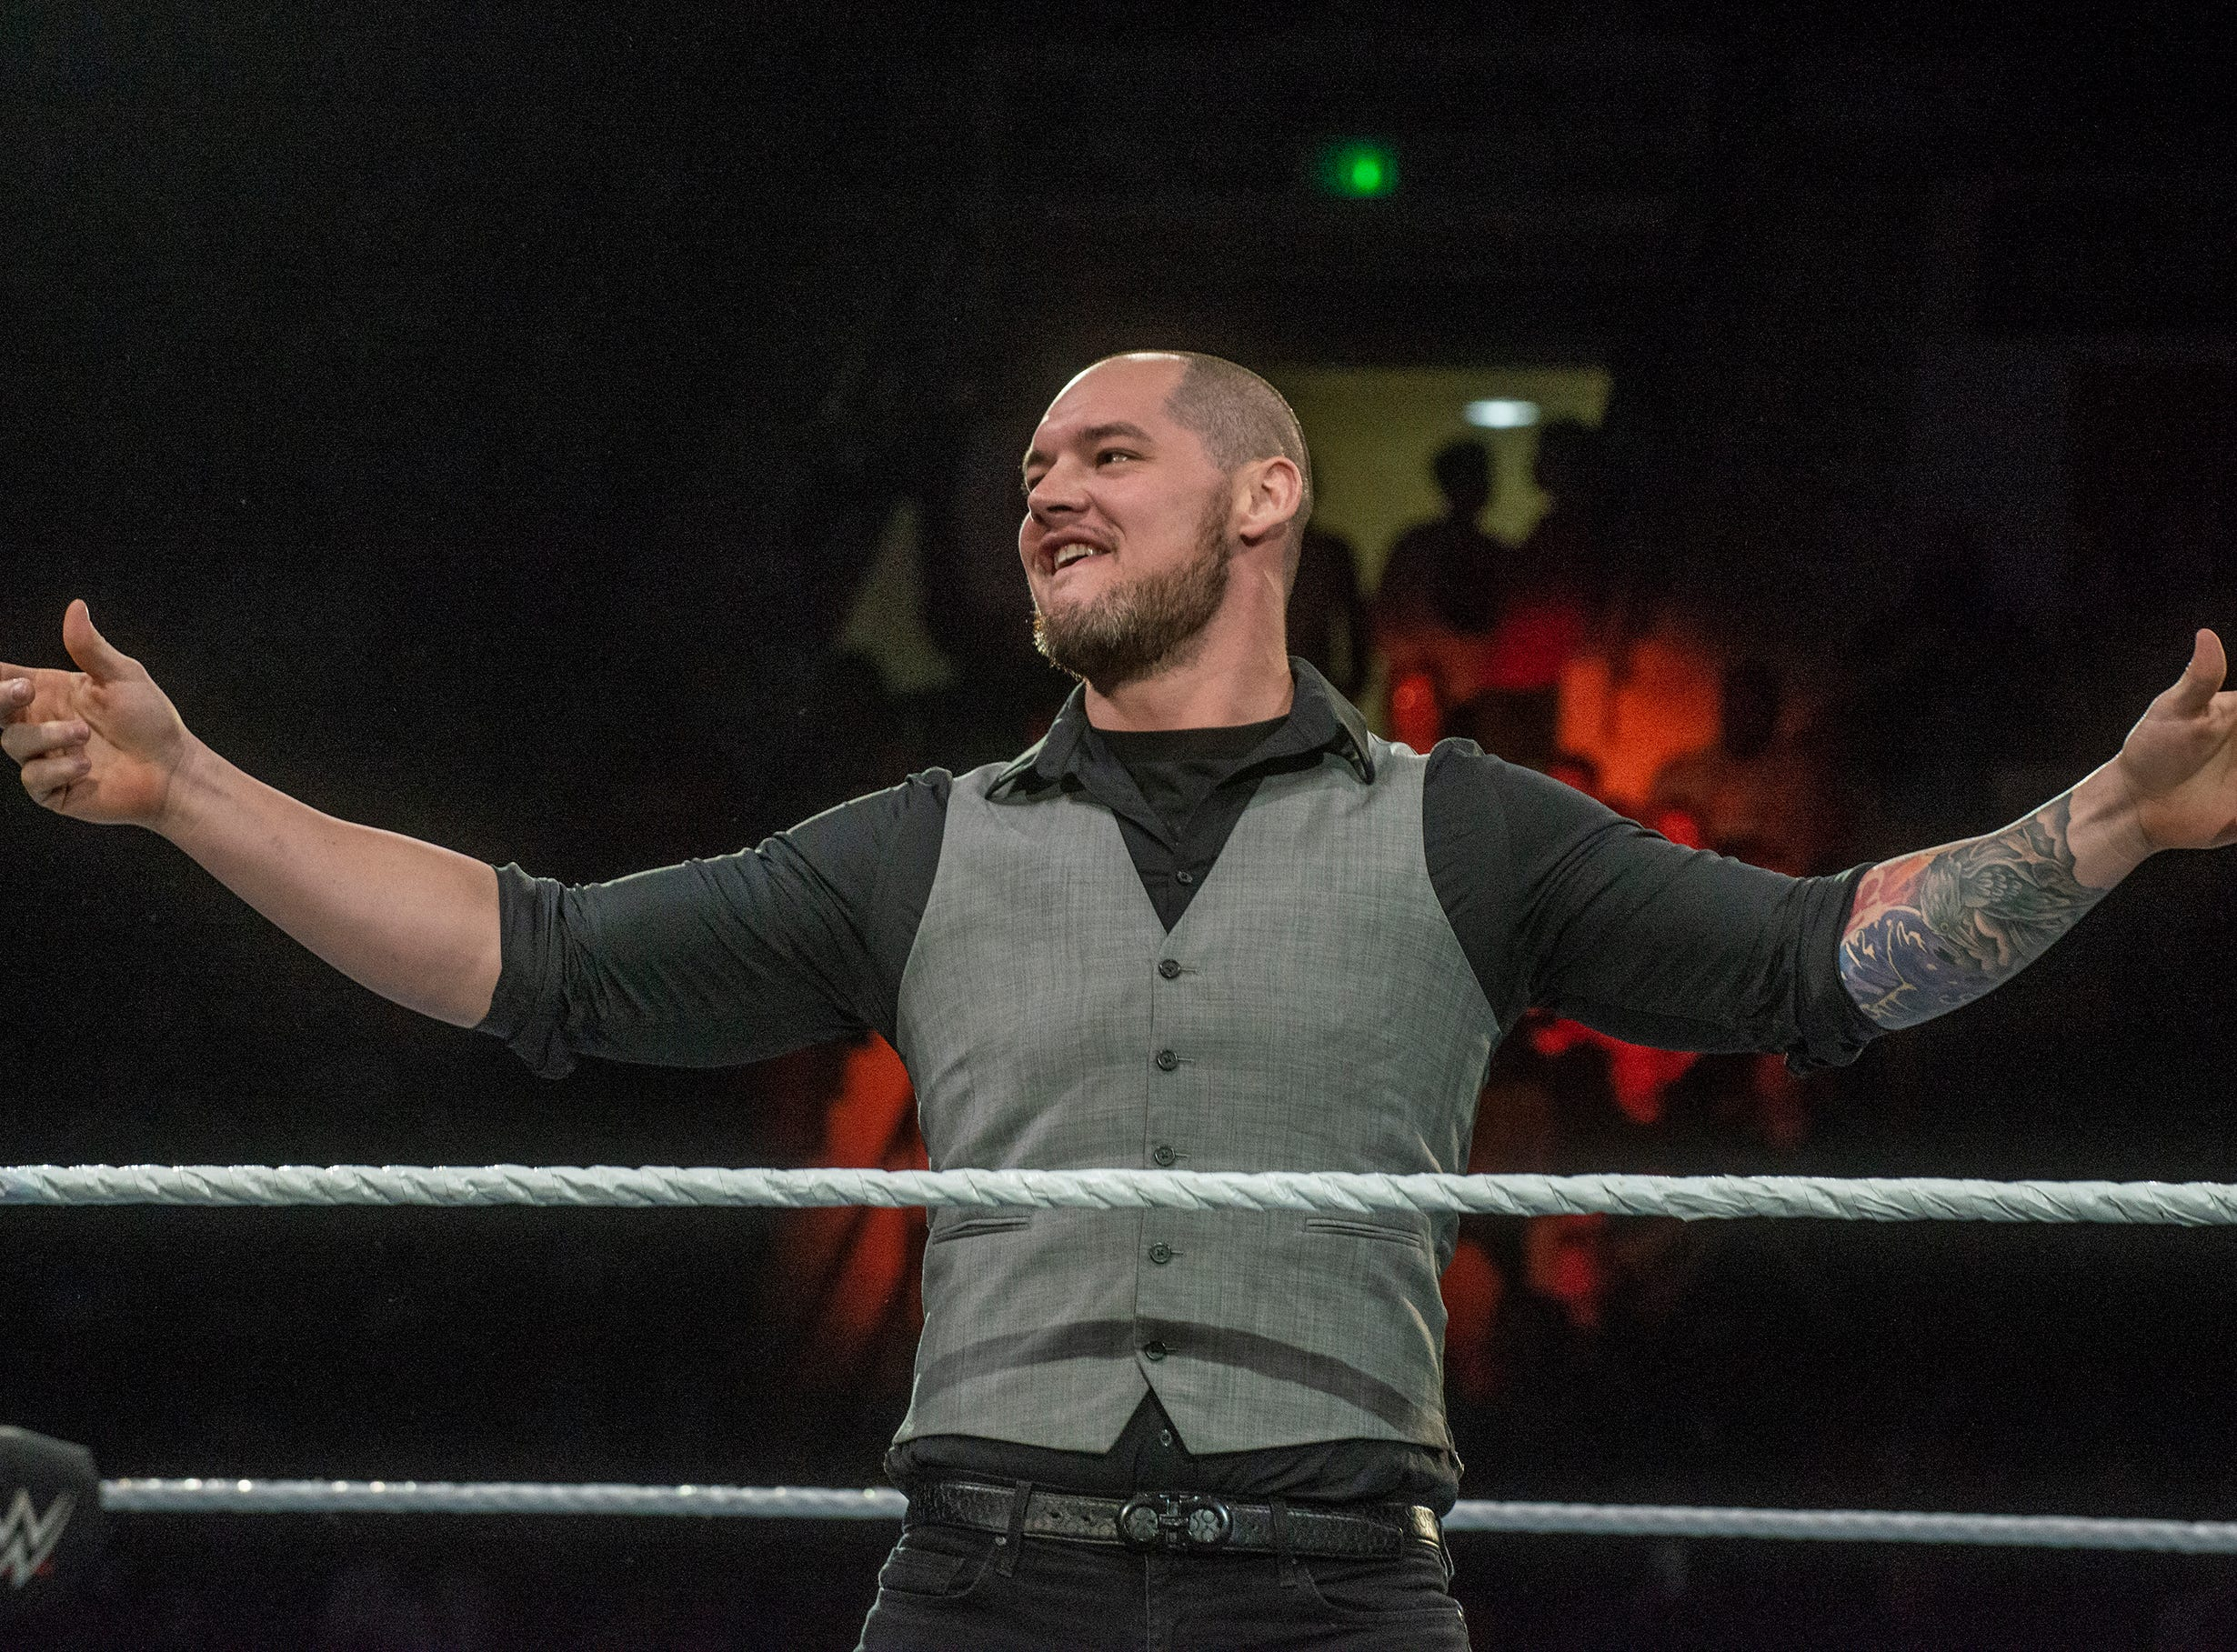 Baron Corbin shows off to the crowd. The main event was a street fight between Baron Corbin and Braun Strowman, with lots of of chairs, sticks and tables. WWE Live Road to Wrestlemania came to Garrett Coliseum in Montgomery on Sunday, Feb. 24, 2019.